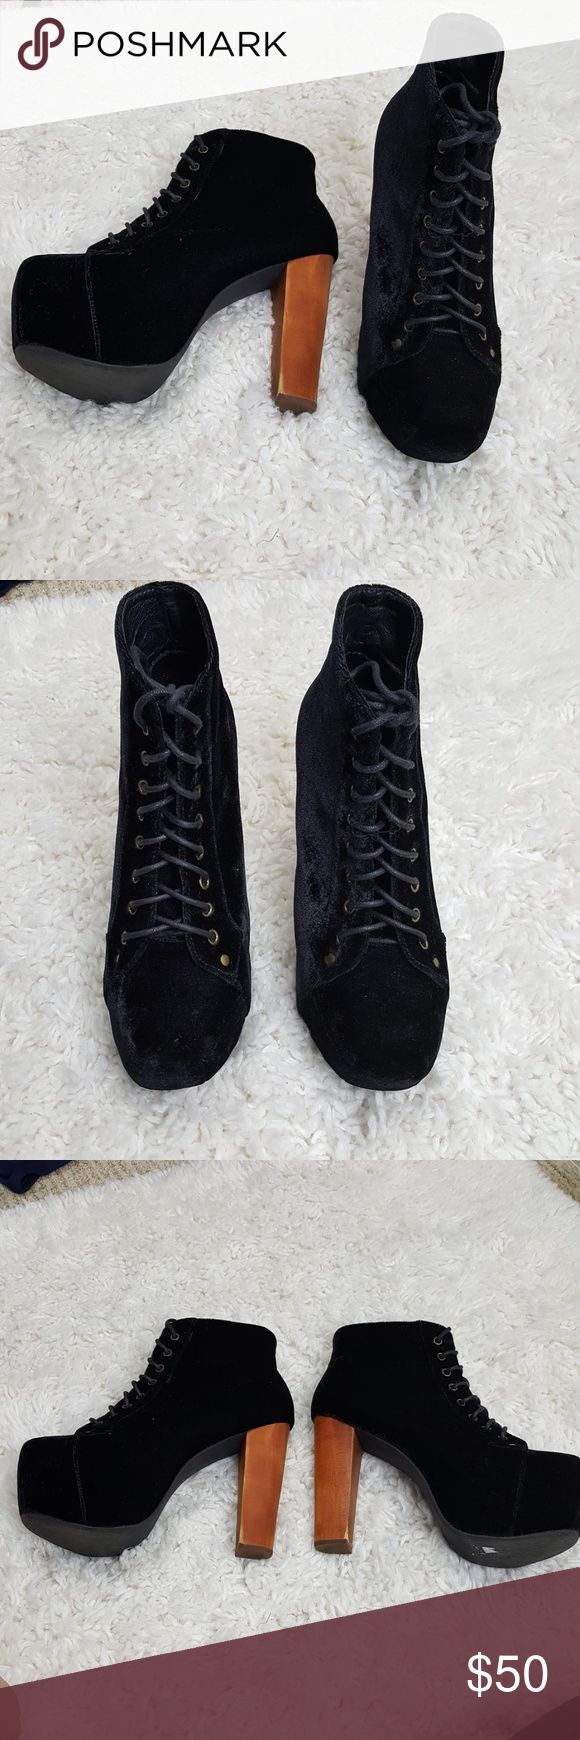 "Jeffrey Campbell Lita Fab Velvet Shoes 7.5 Black velvet upper. Man made soles. Wooden heels. Lightly worn, some wear on heels, please see all photos for the damage. Women's size 7.5  5"" platform  #2244 Jeffrey Campbell Shoes Platforms"